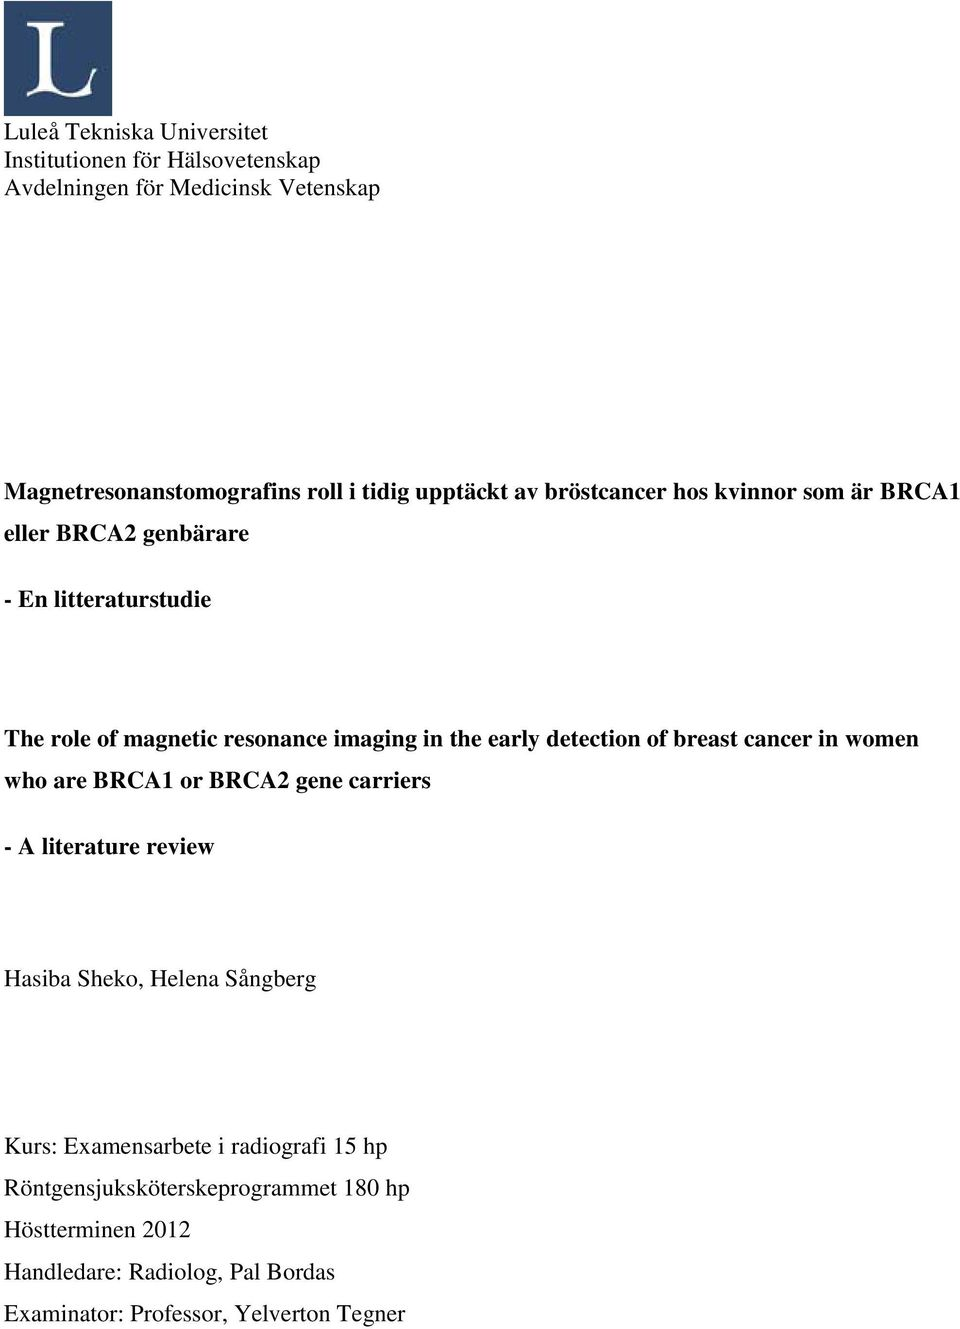 early detection of breast cancer in women who are BRCA1 or BRCA2 gene carriers - A literature review Hasiba Sheko, Helena Sångberg Kurs: